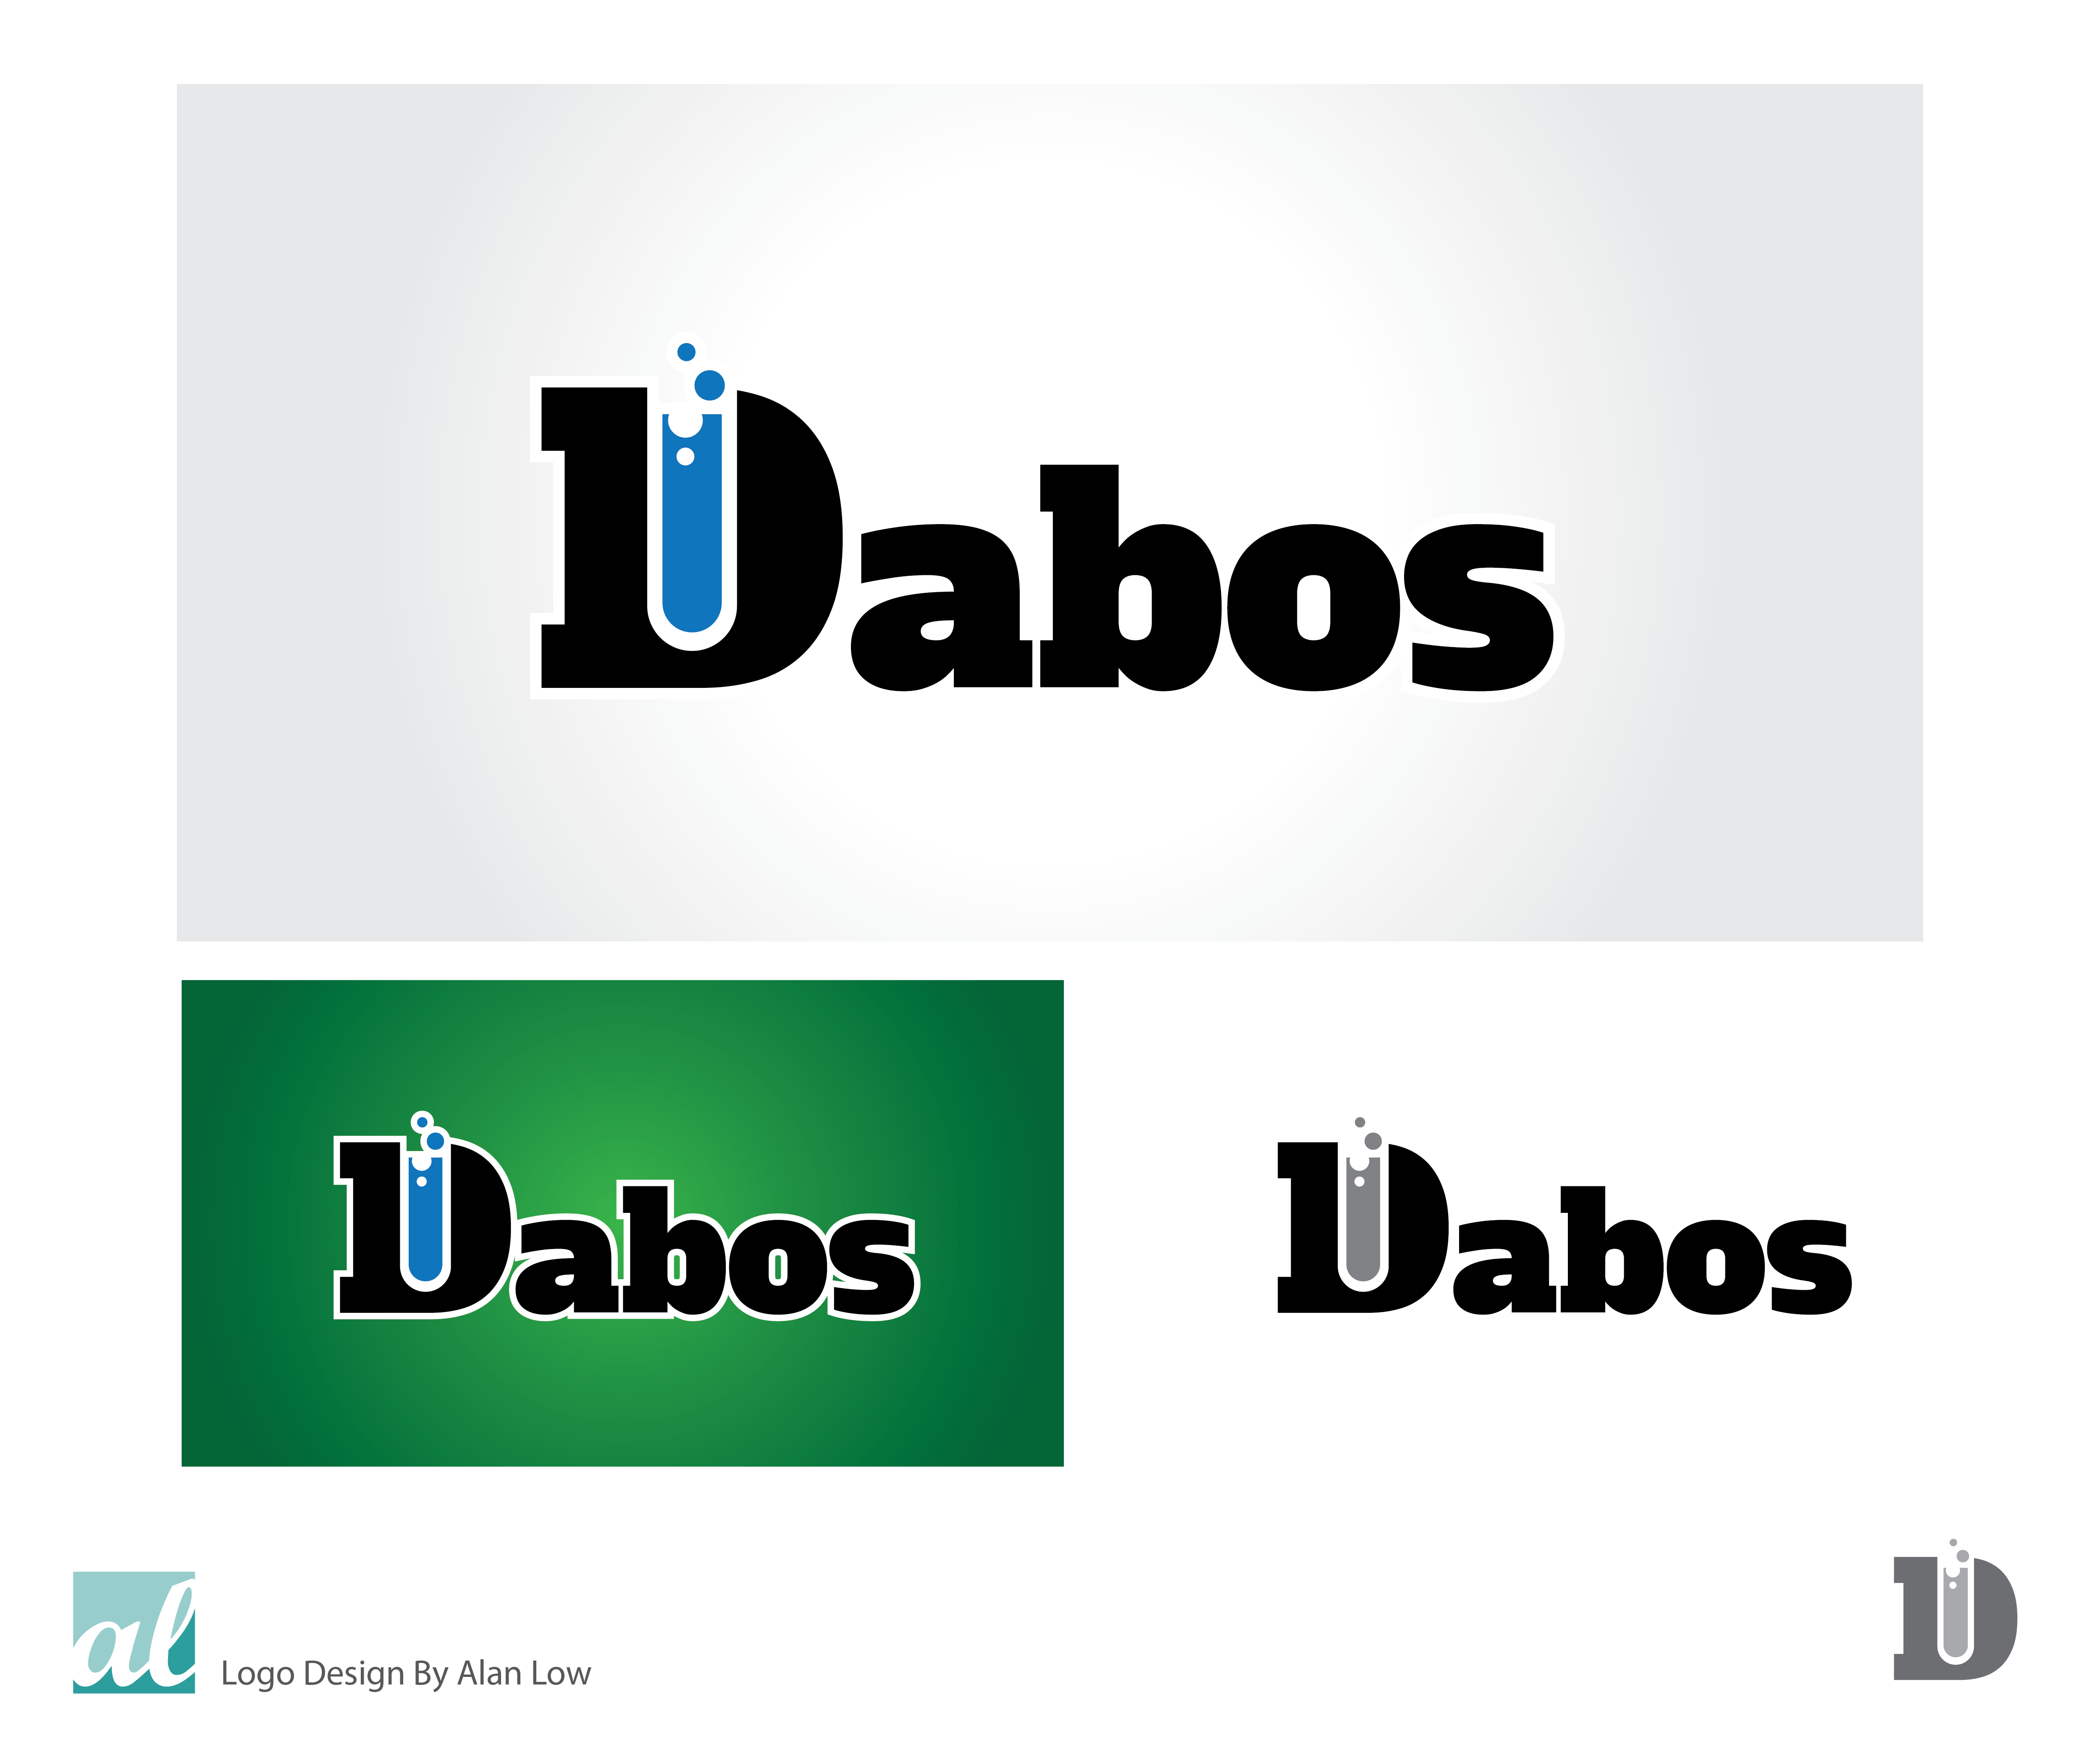 Logo Design by Alan Low - Entry No. 136 in the Logo Design Contest Imaginative Logo Design for DABOS, Limited Liability Company.